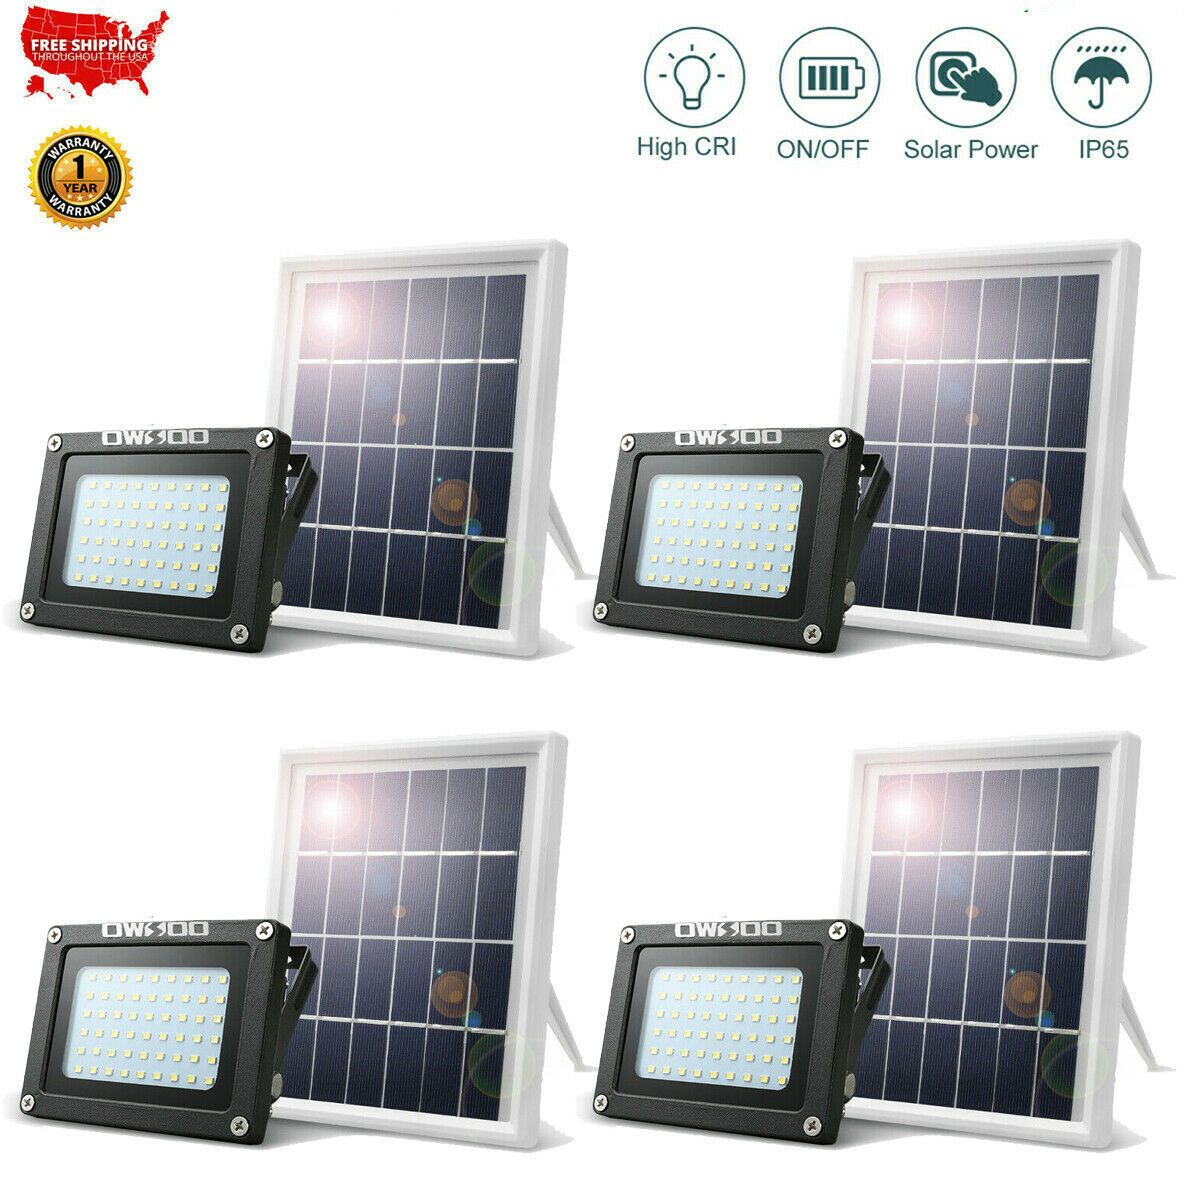 Details About Solar Sensor 54 Led Flood Light Security Spot Lamp Outdoor Security Dusk To Dawn In 2020 Solar Lamp Solar Wall Lights Solar Flood Lights